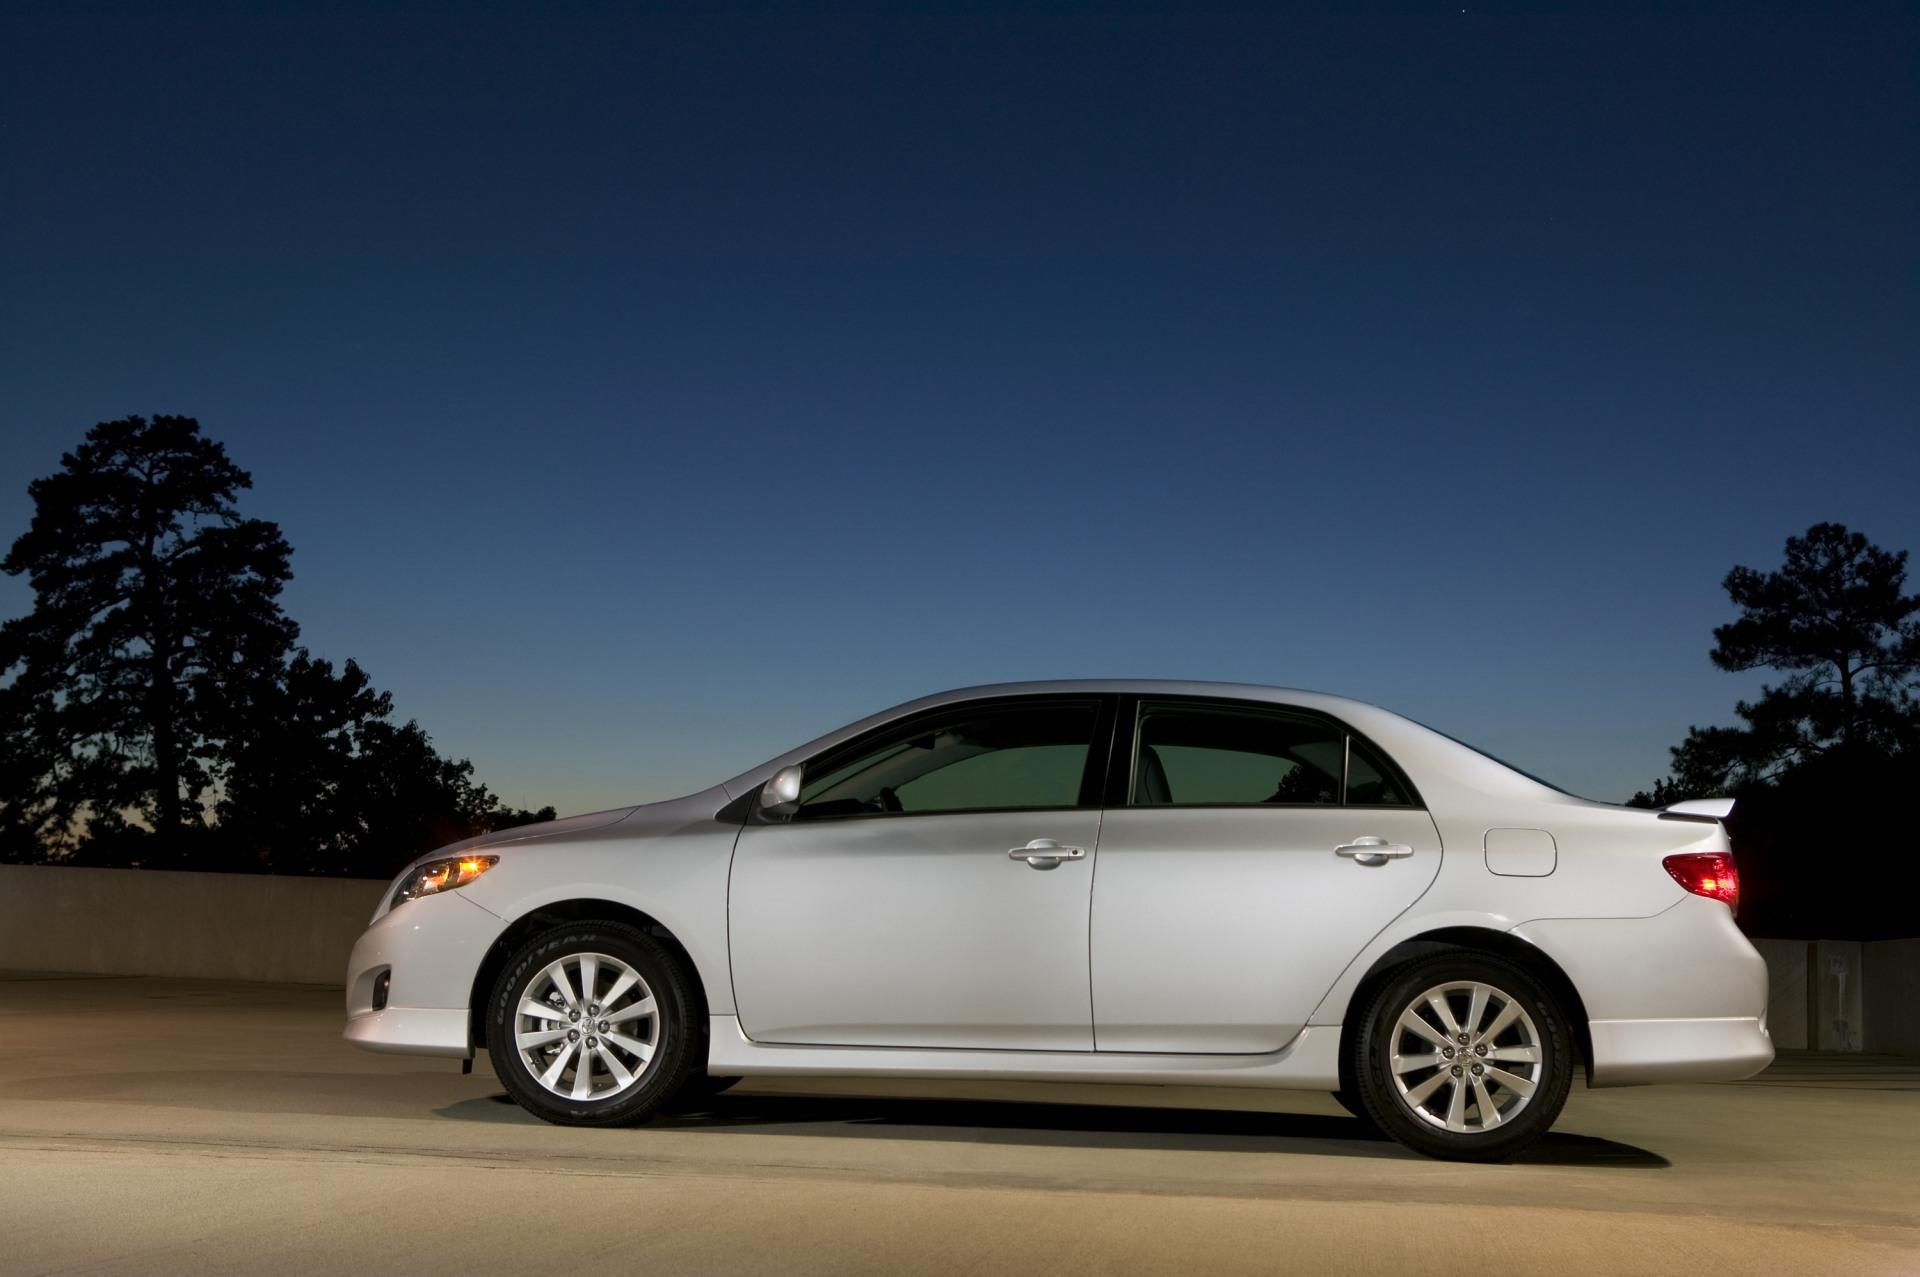 2010 toyota corolla technical and mechanical specifications concept carz